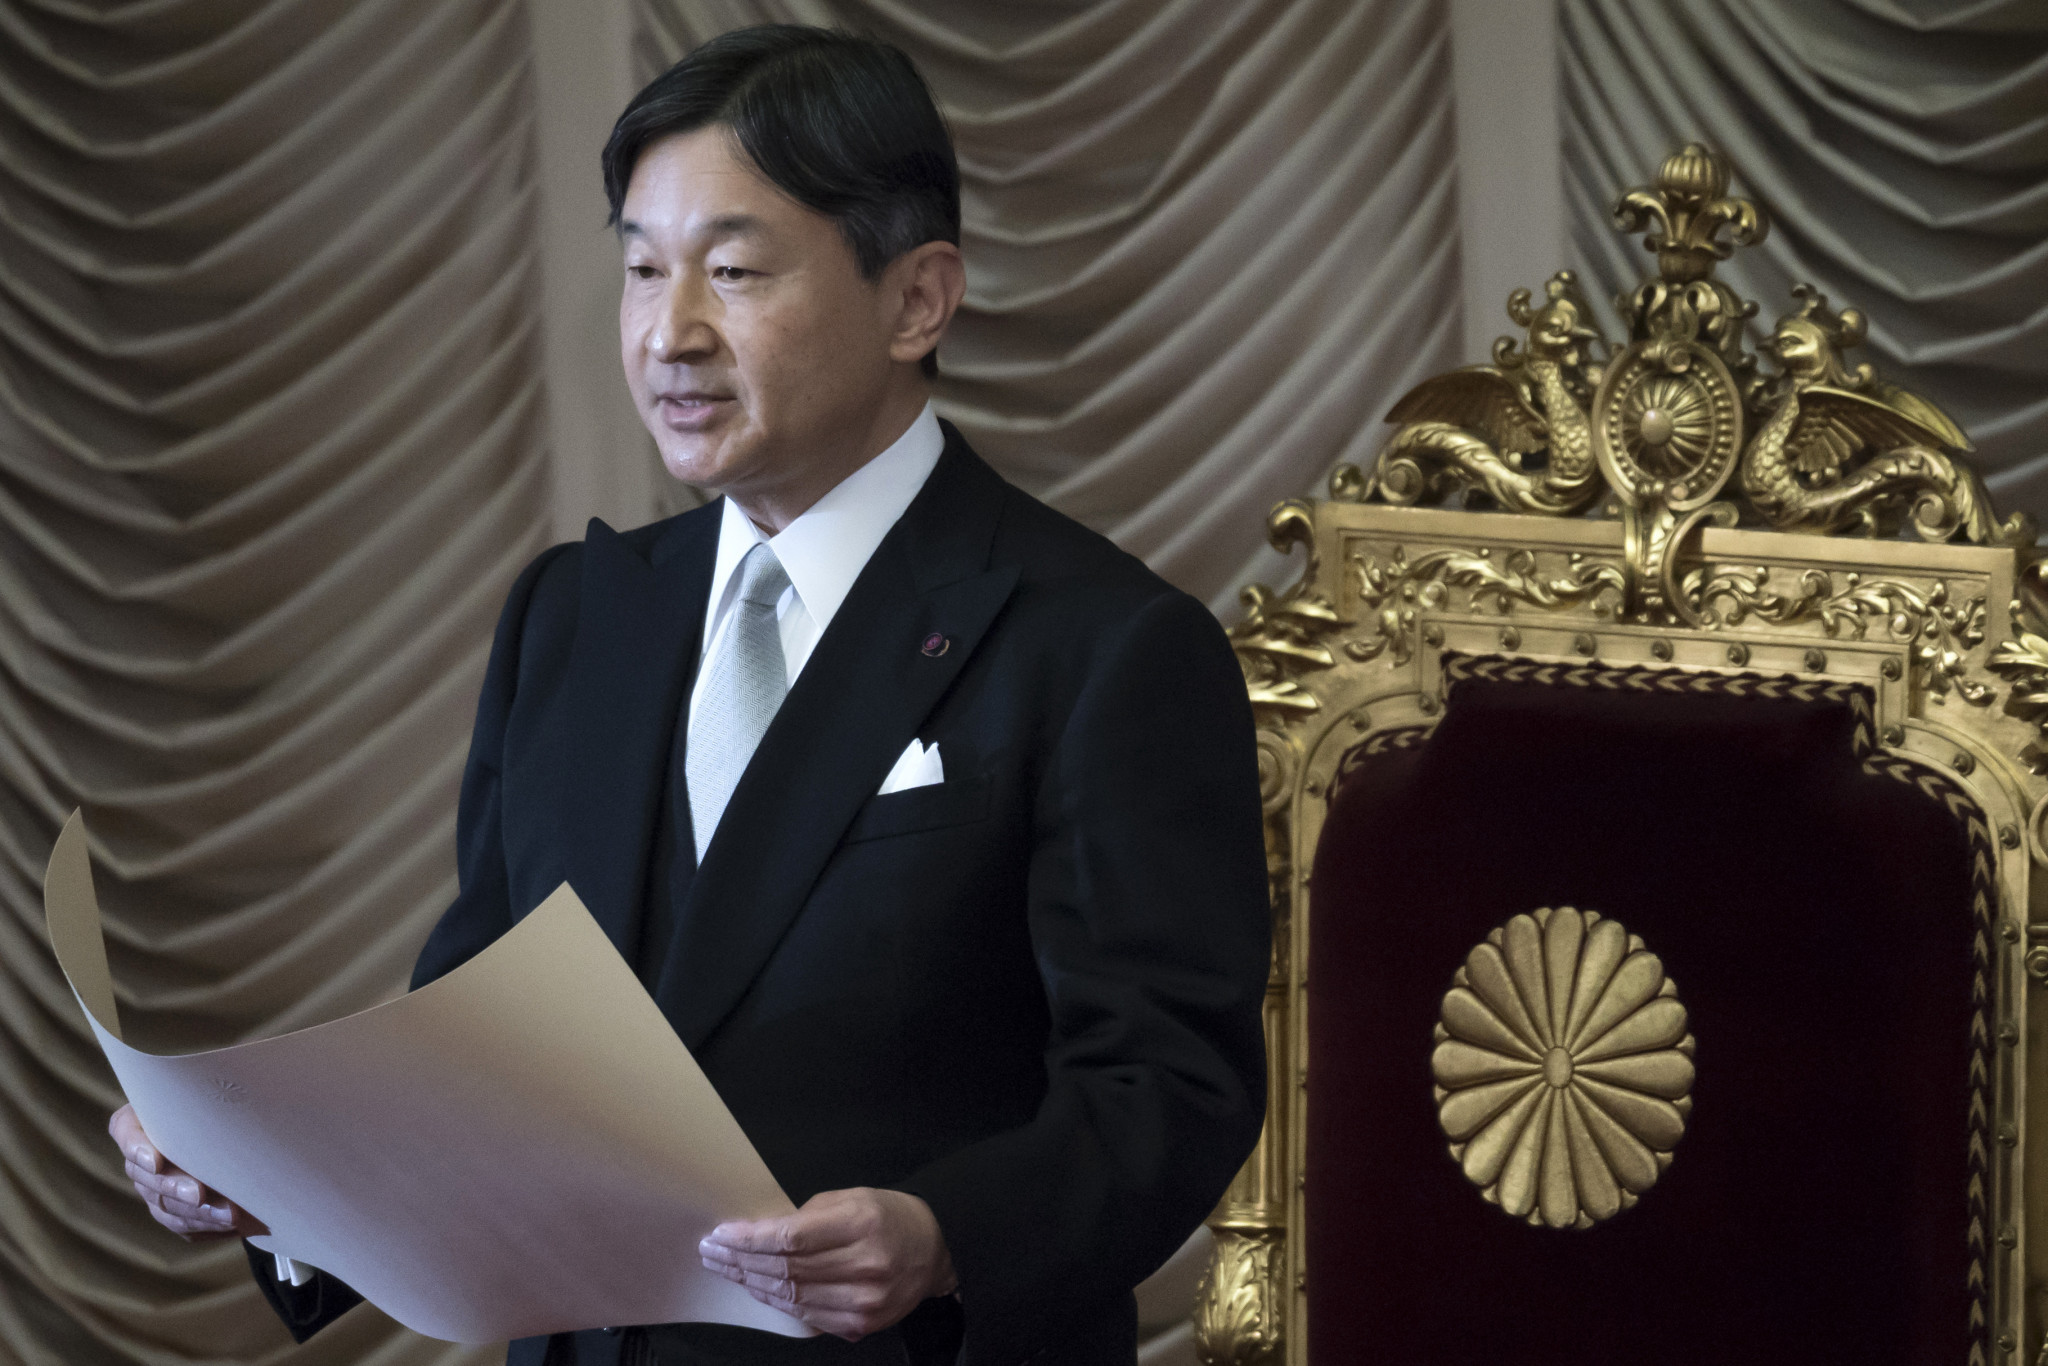 Emperor Naruhito acceded to the throne in May 2019 following the abdication of his father ©Getty Images